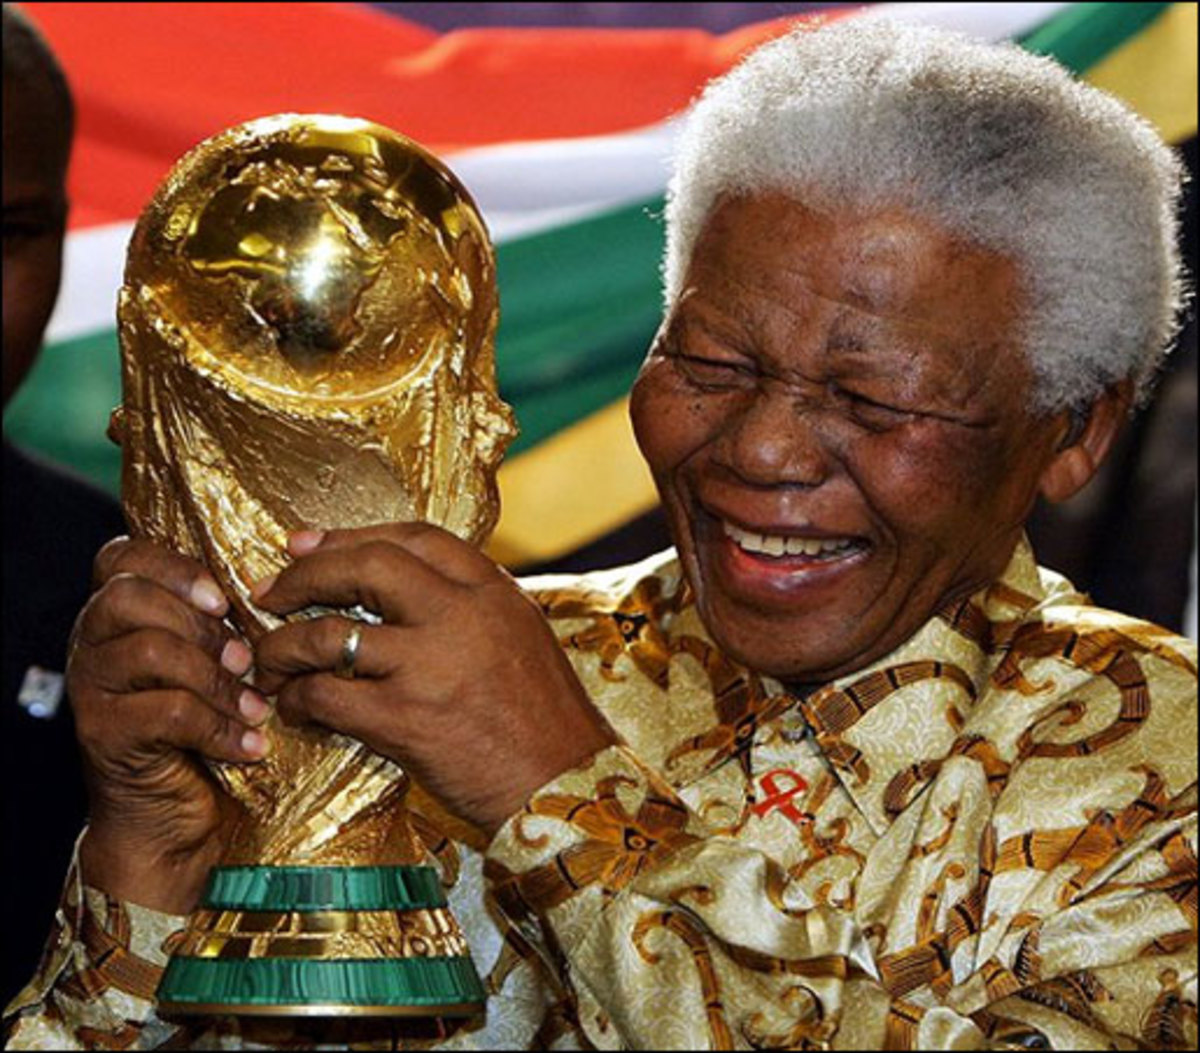 Nelson  Rolihlahla Madiba Mandela holding a model of the World Cup